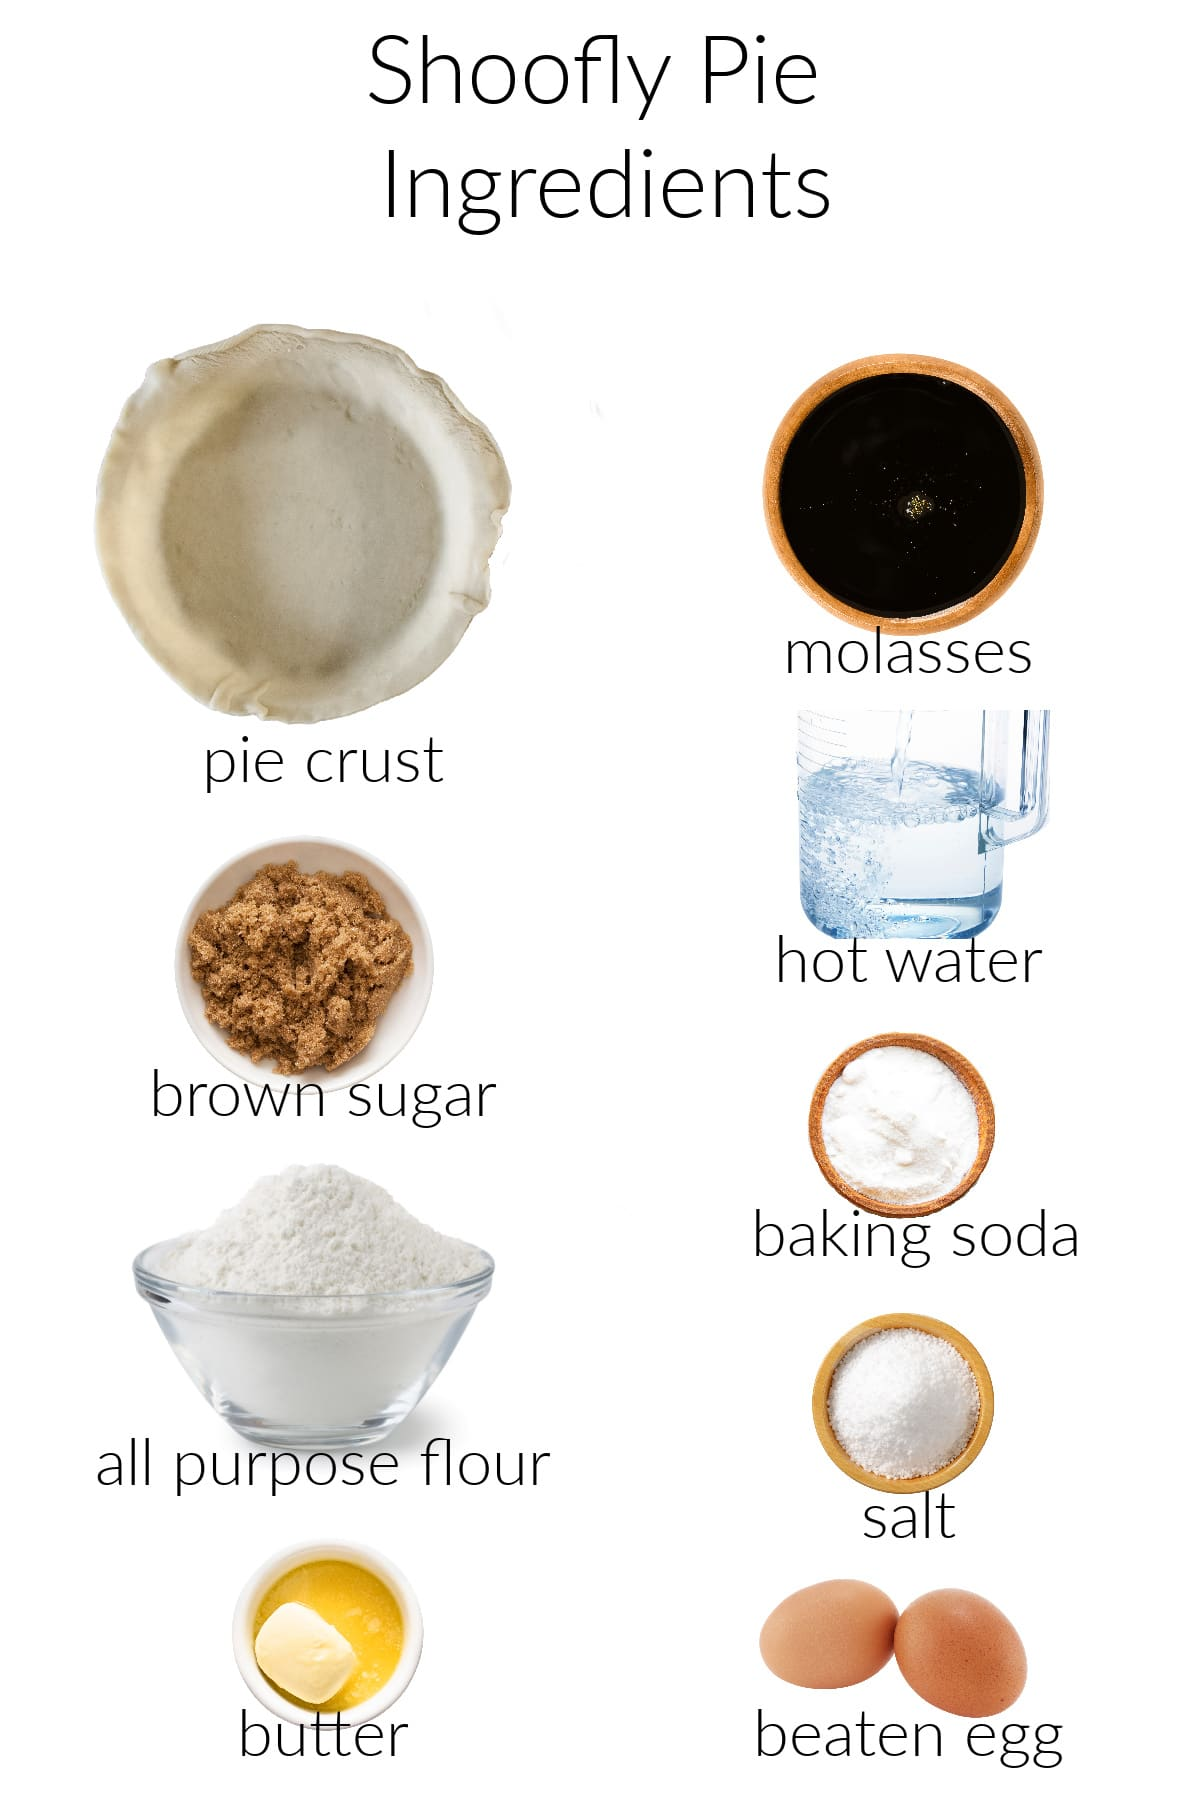 Collage of ingredients for making wet bottom shoofly pie.